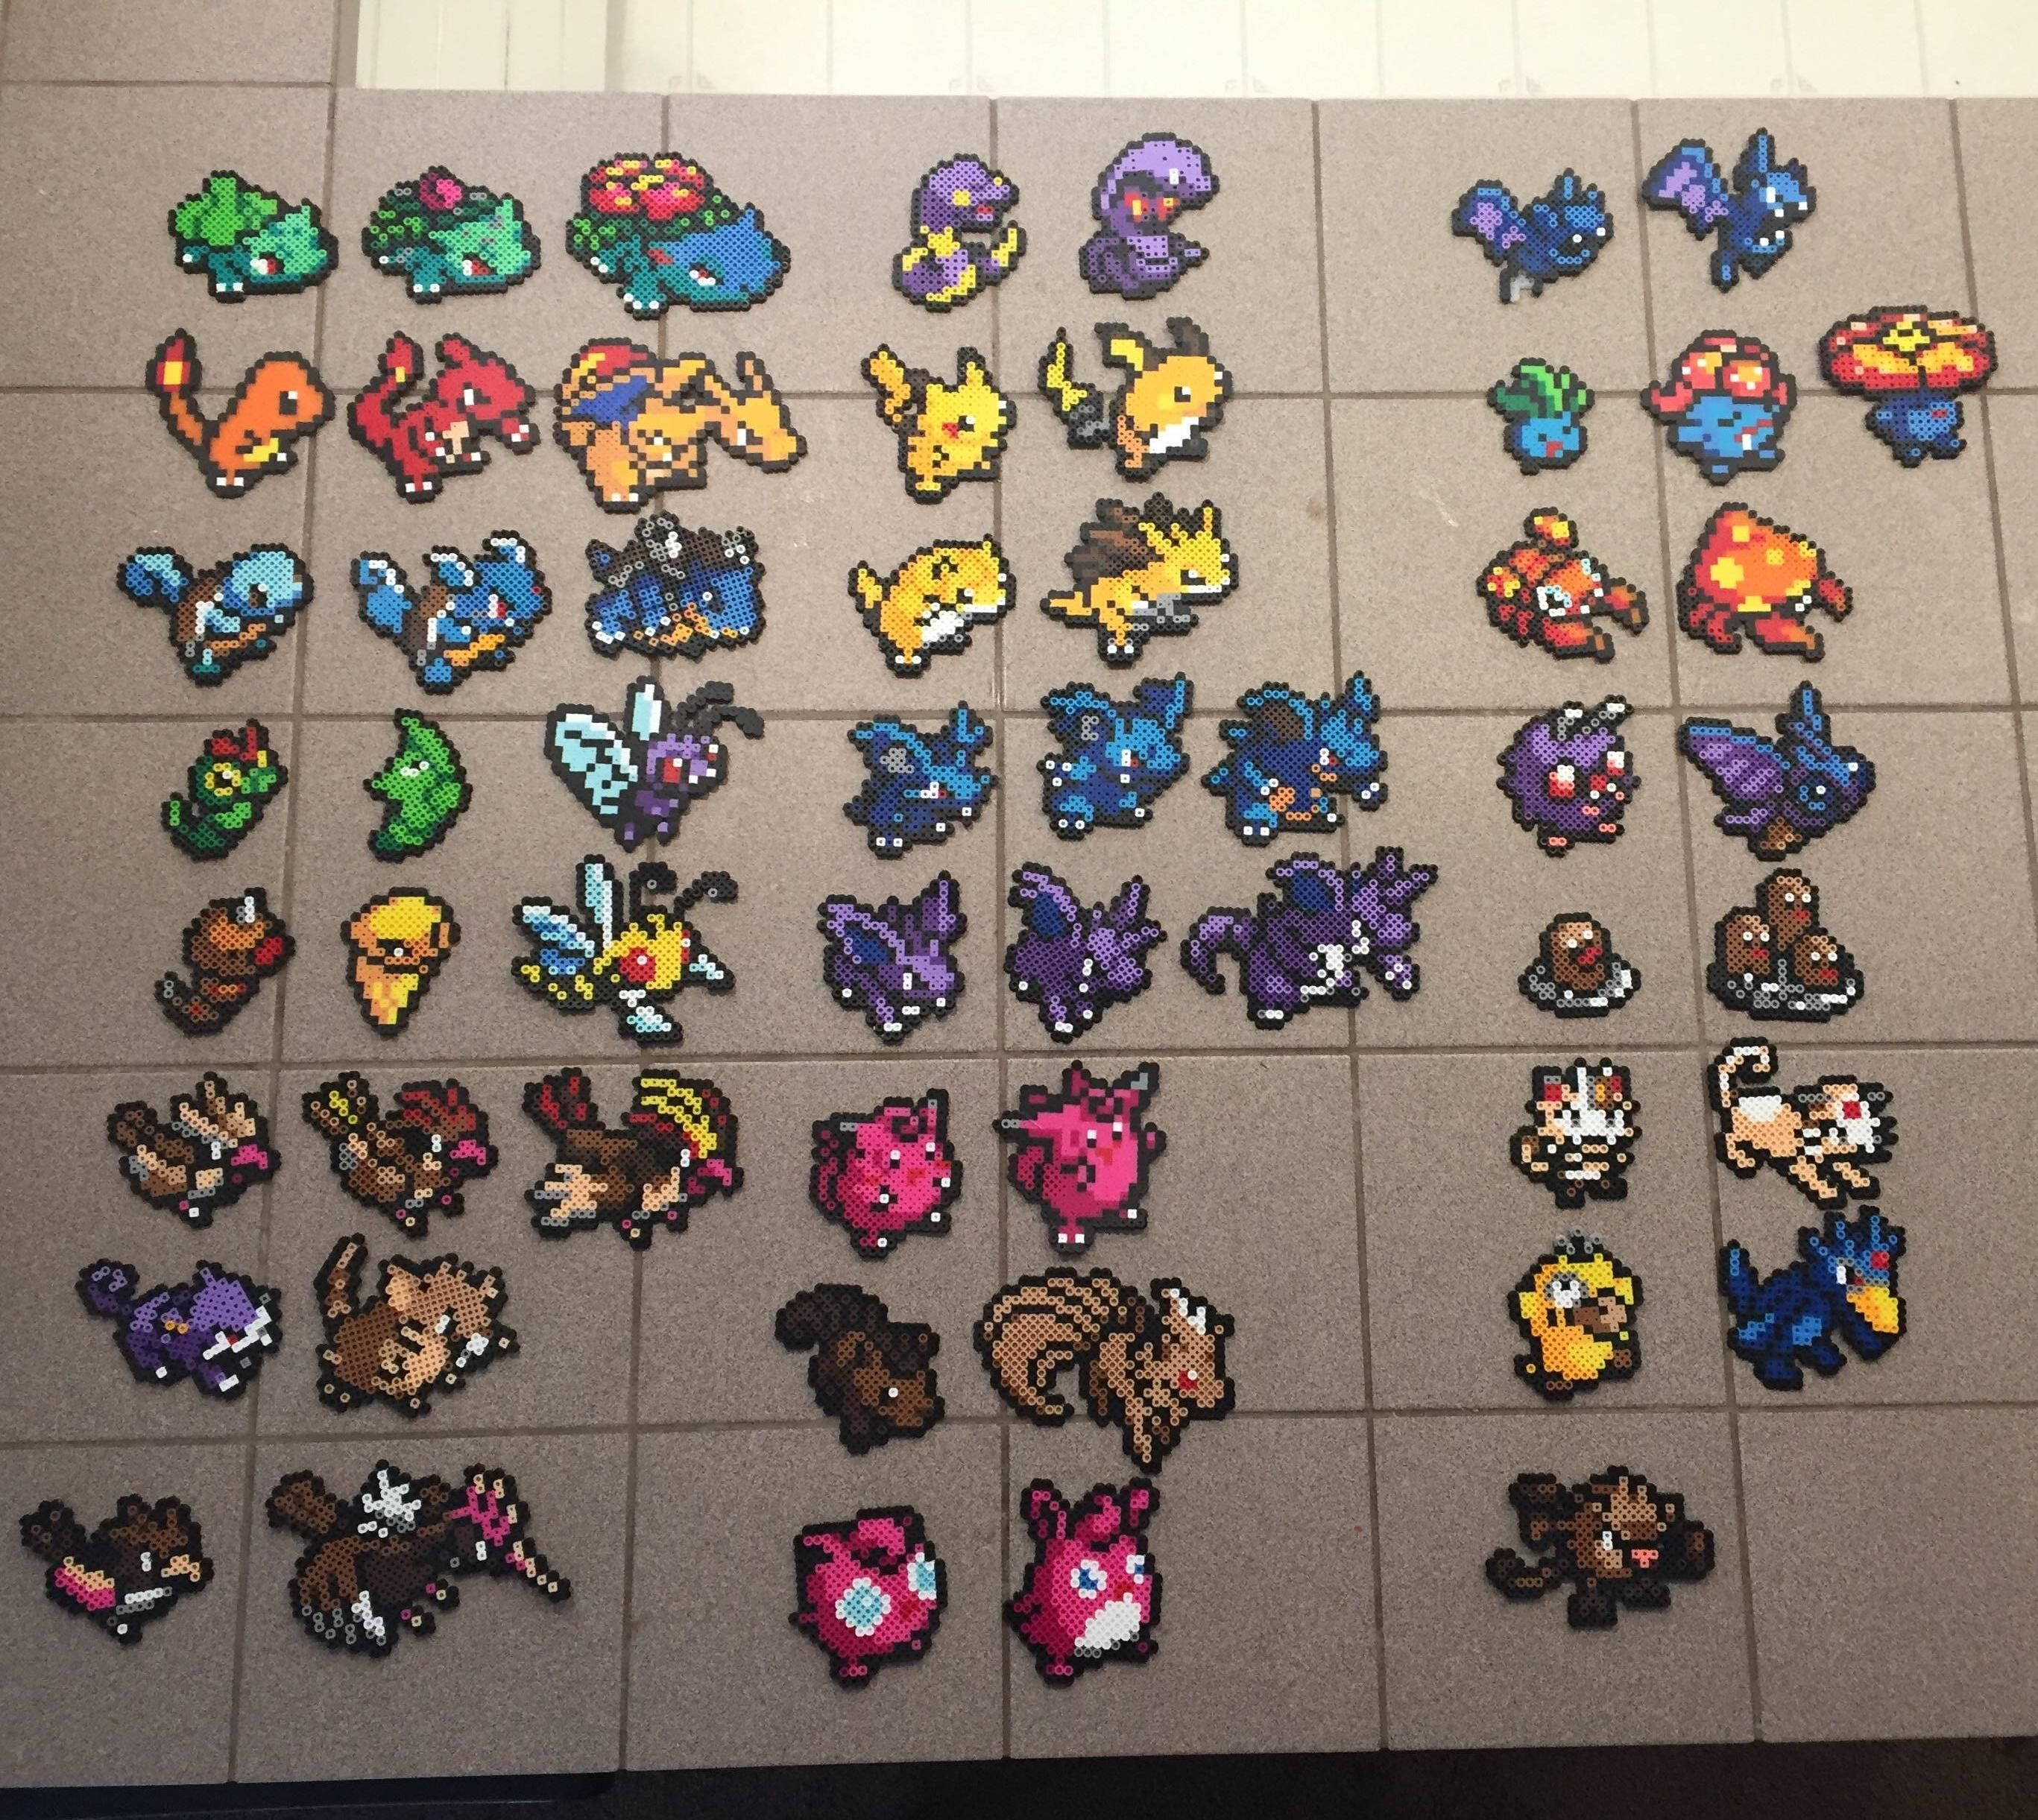 my girlfriend and i started doing perler beads with the original